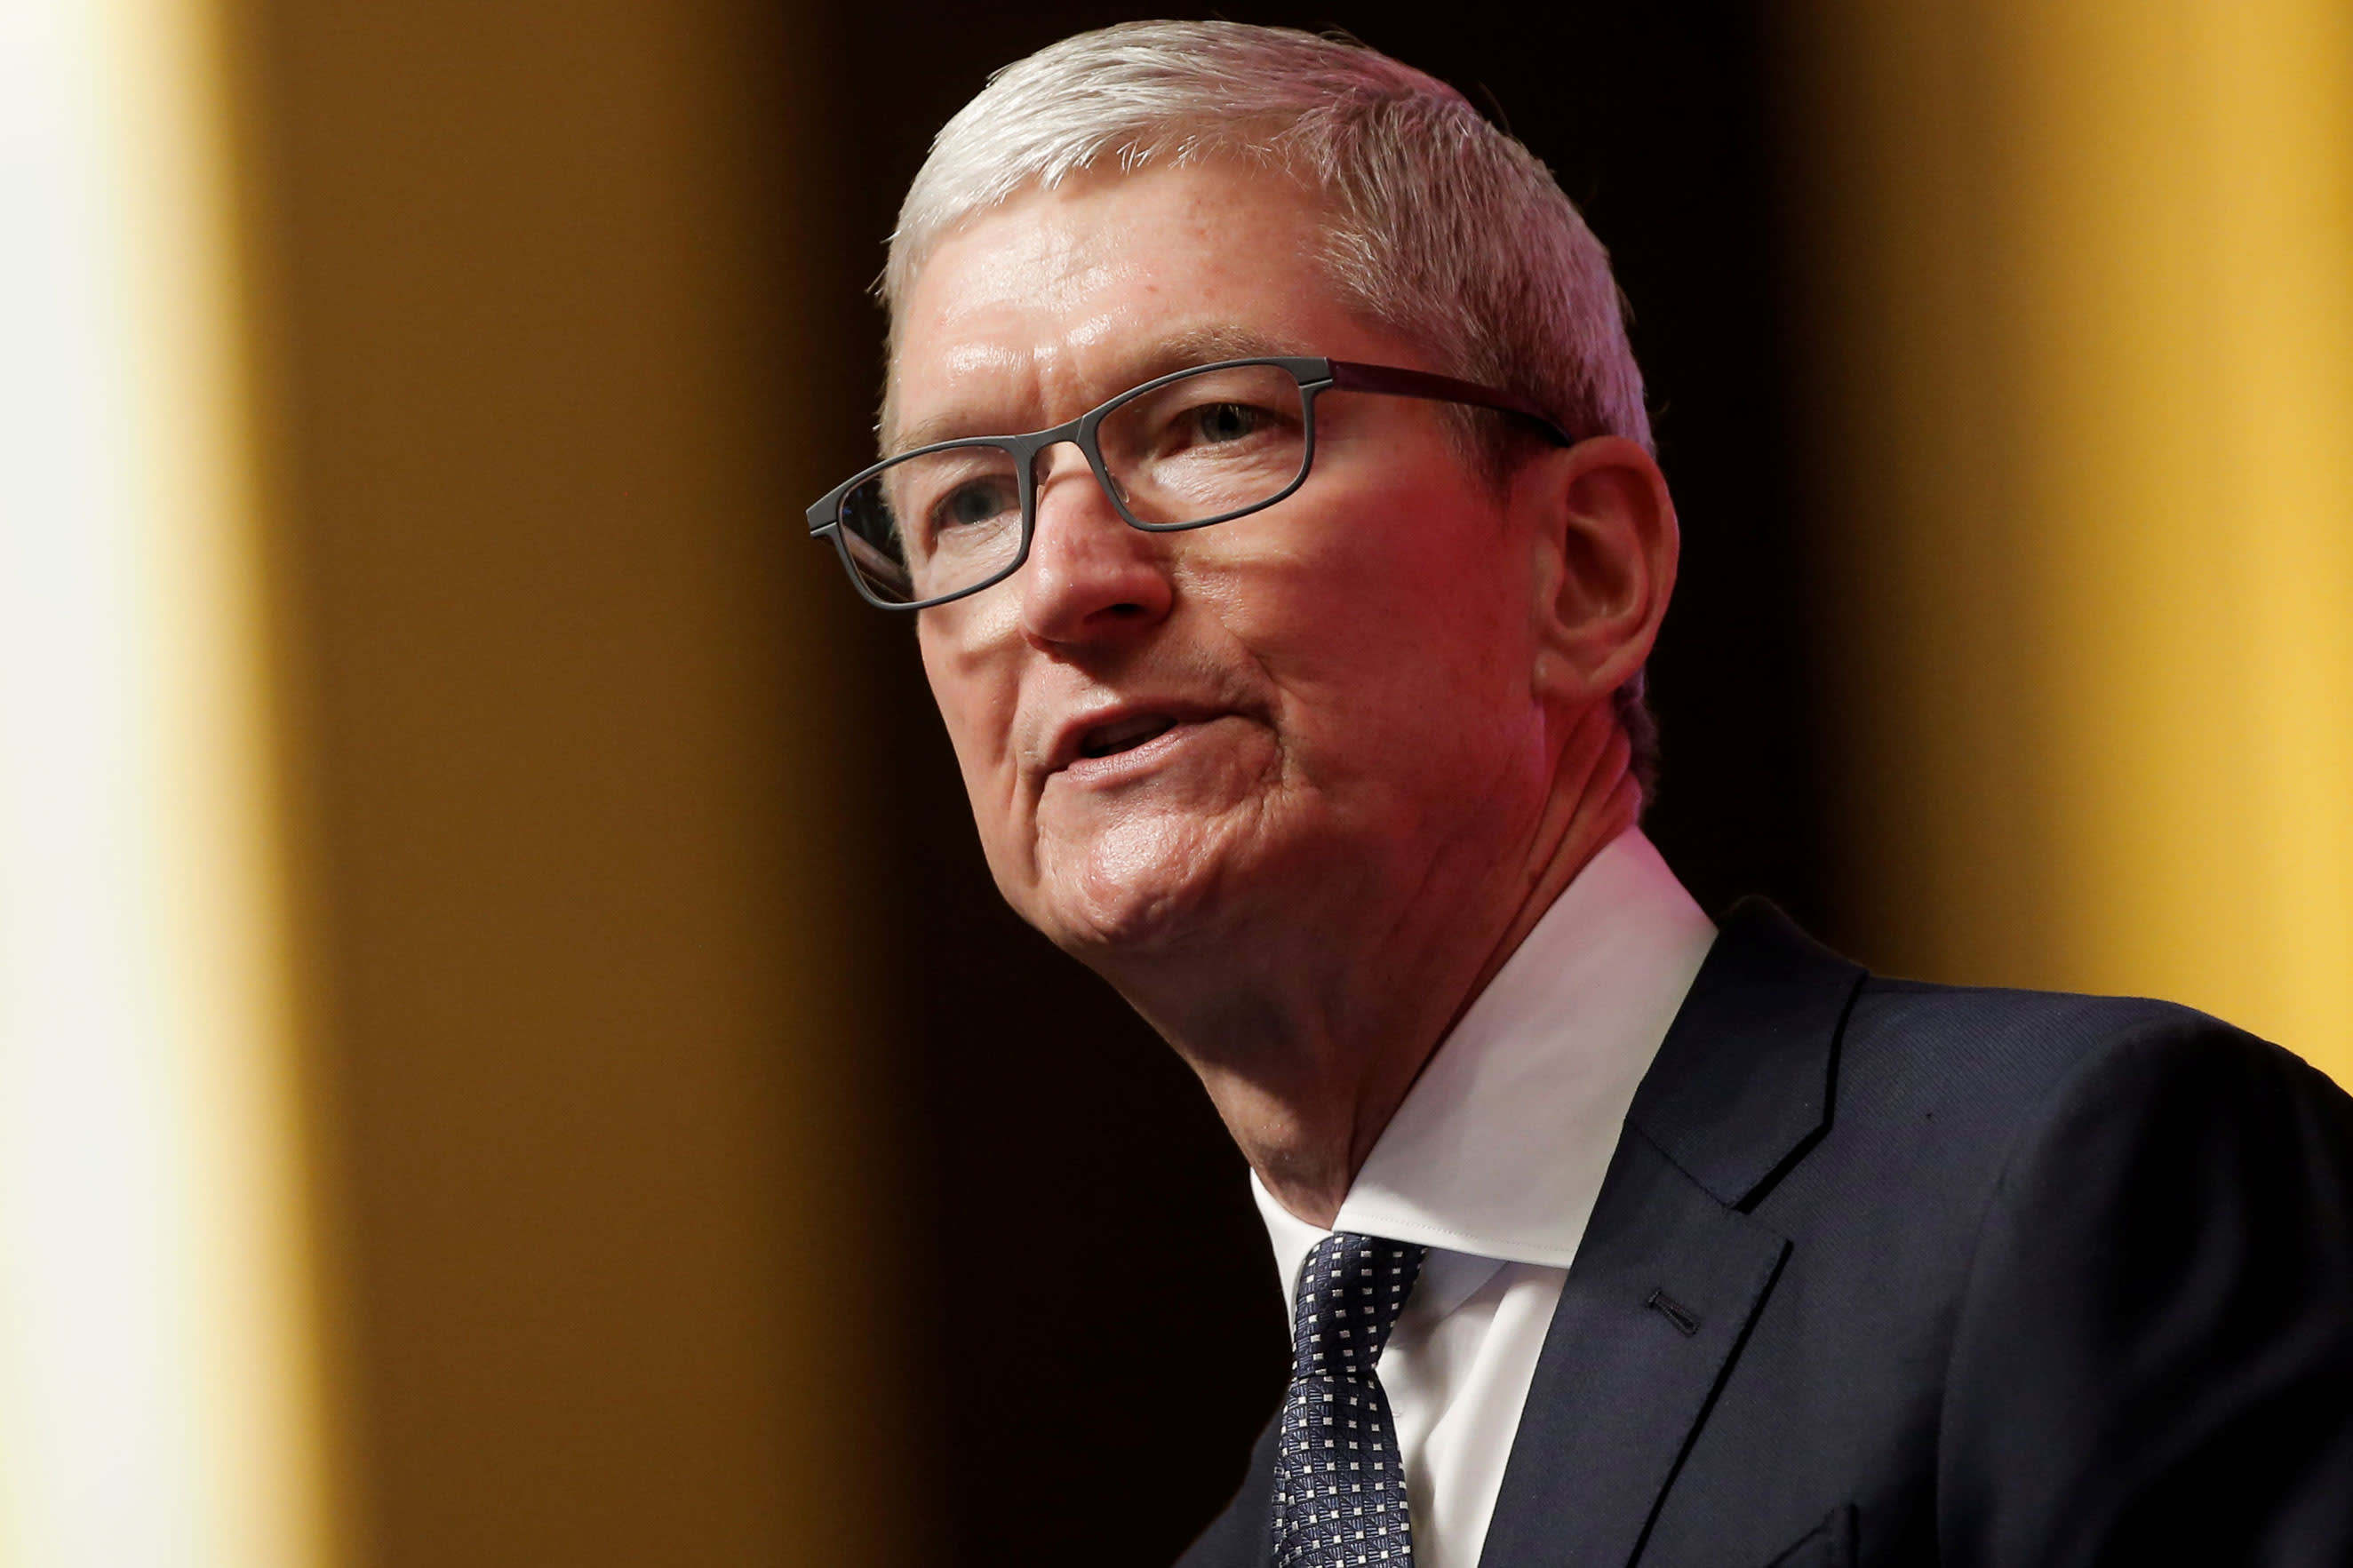 Apple CEO Tim Cook calls US inaction on gun control 'insanity' after mass shootings